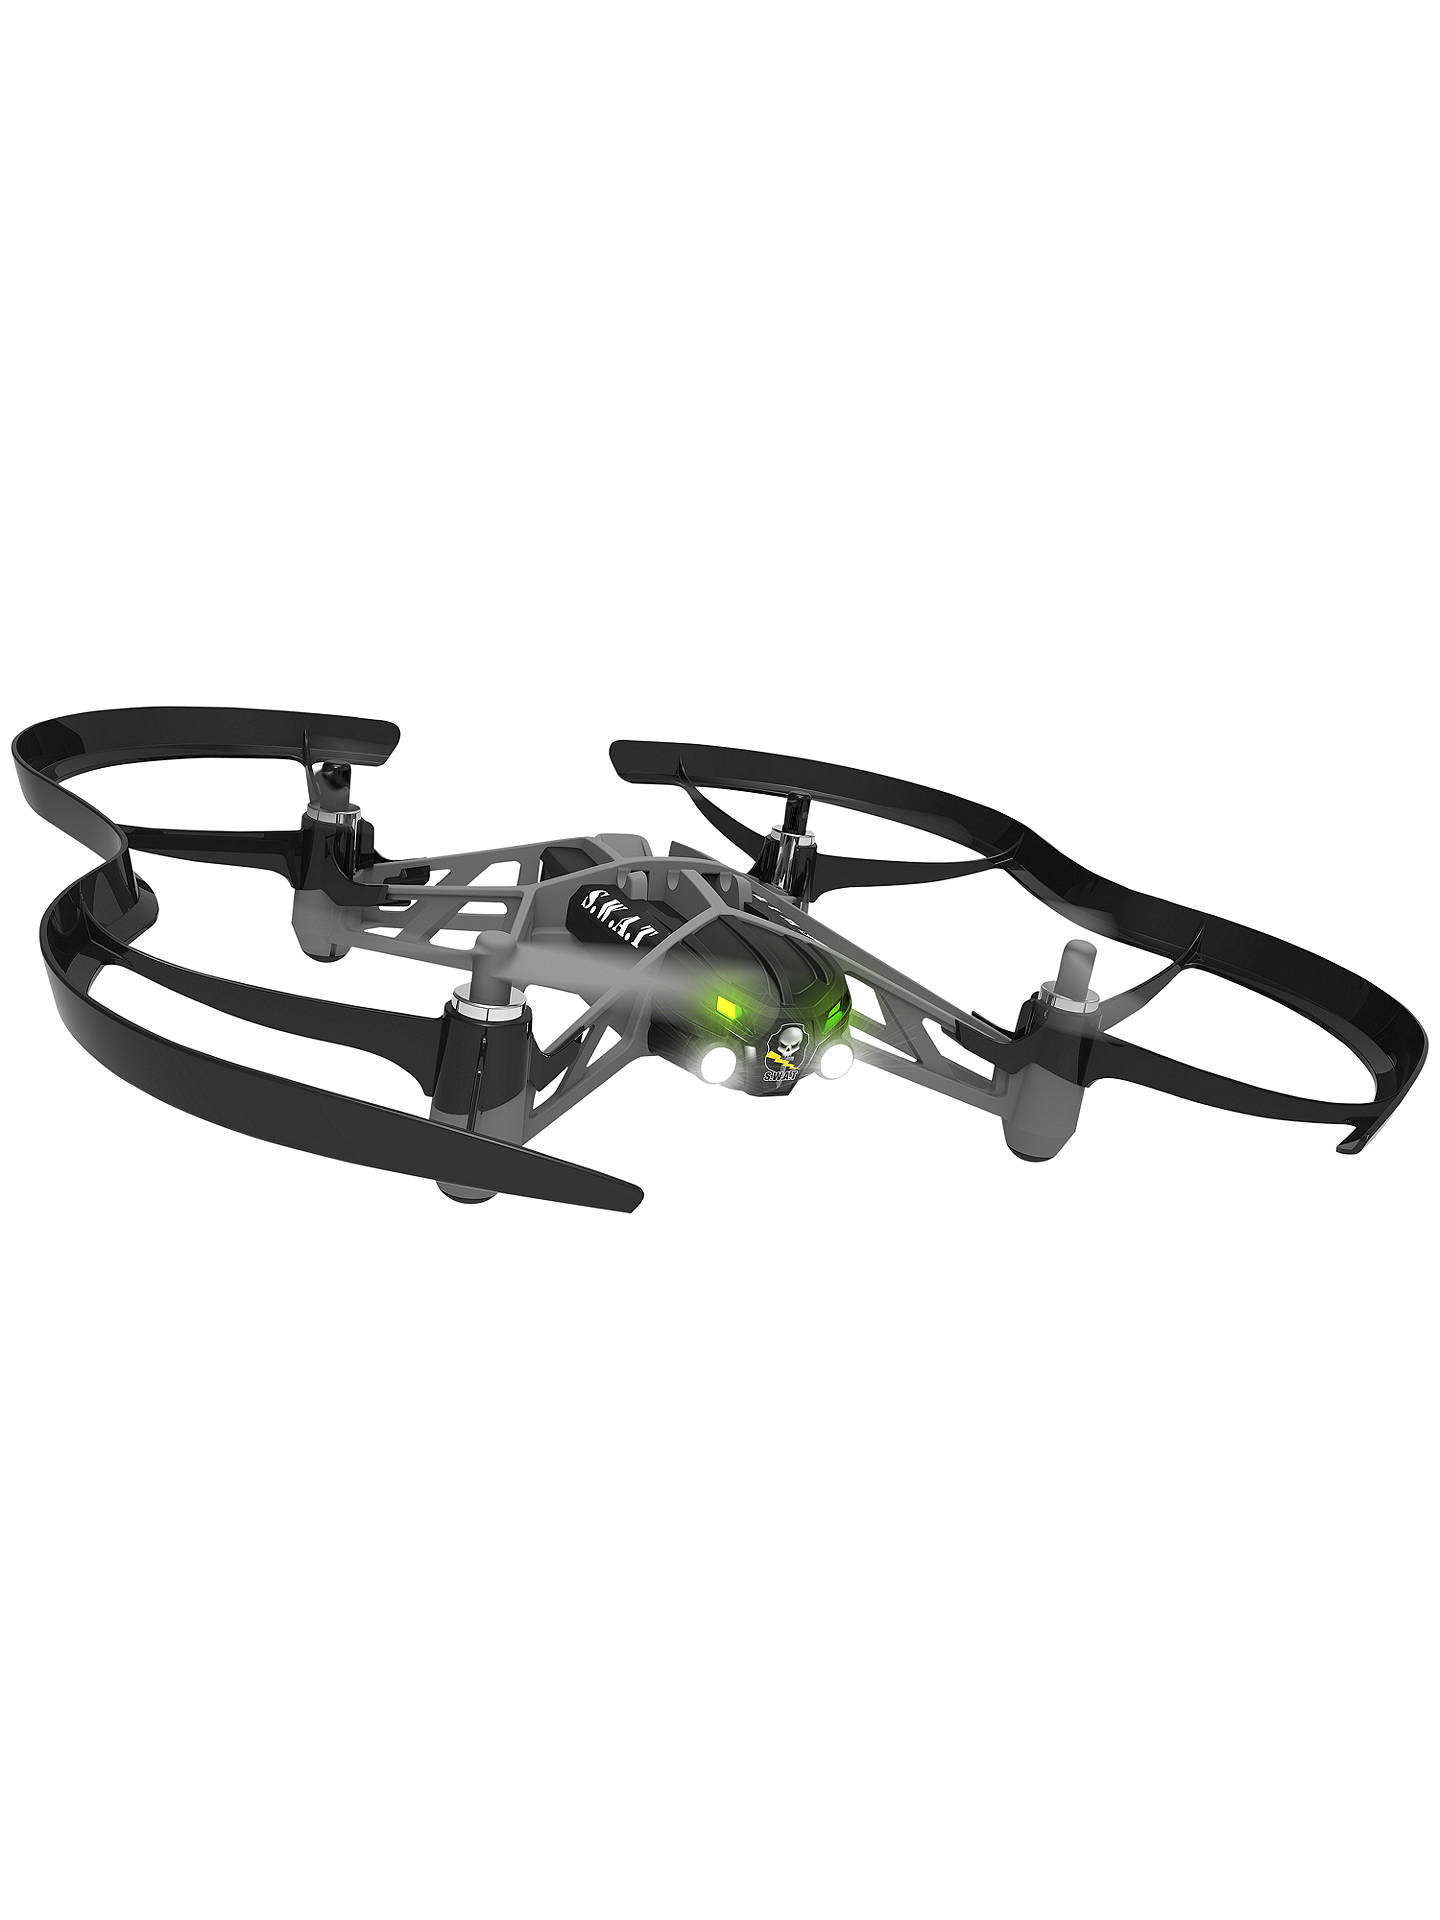 Parrot Swat Airborne Night Minidrone Black At John Lewis Partners Minidrones Rolling Spiders White Buyparrot Online